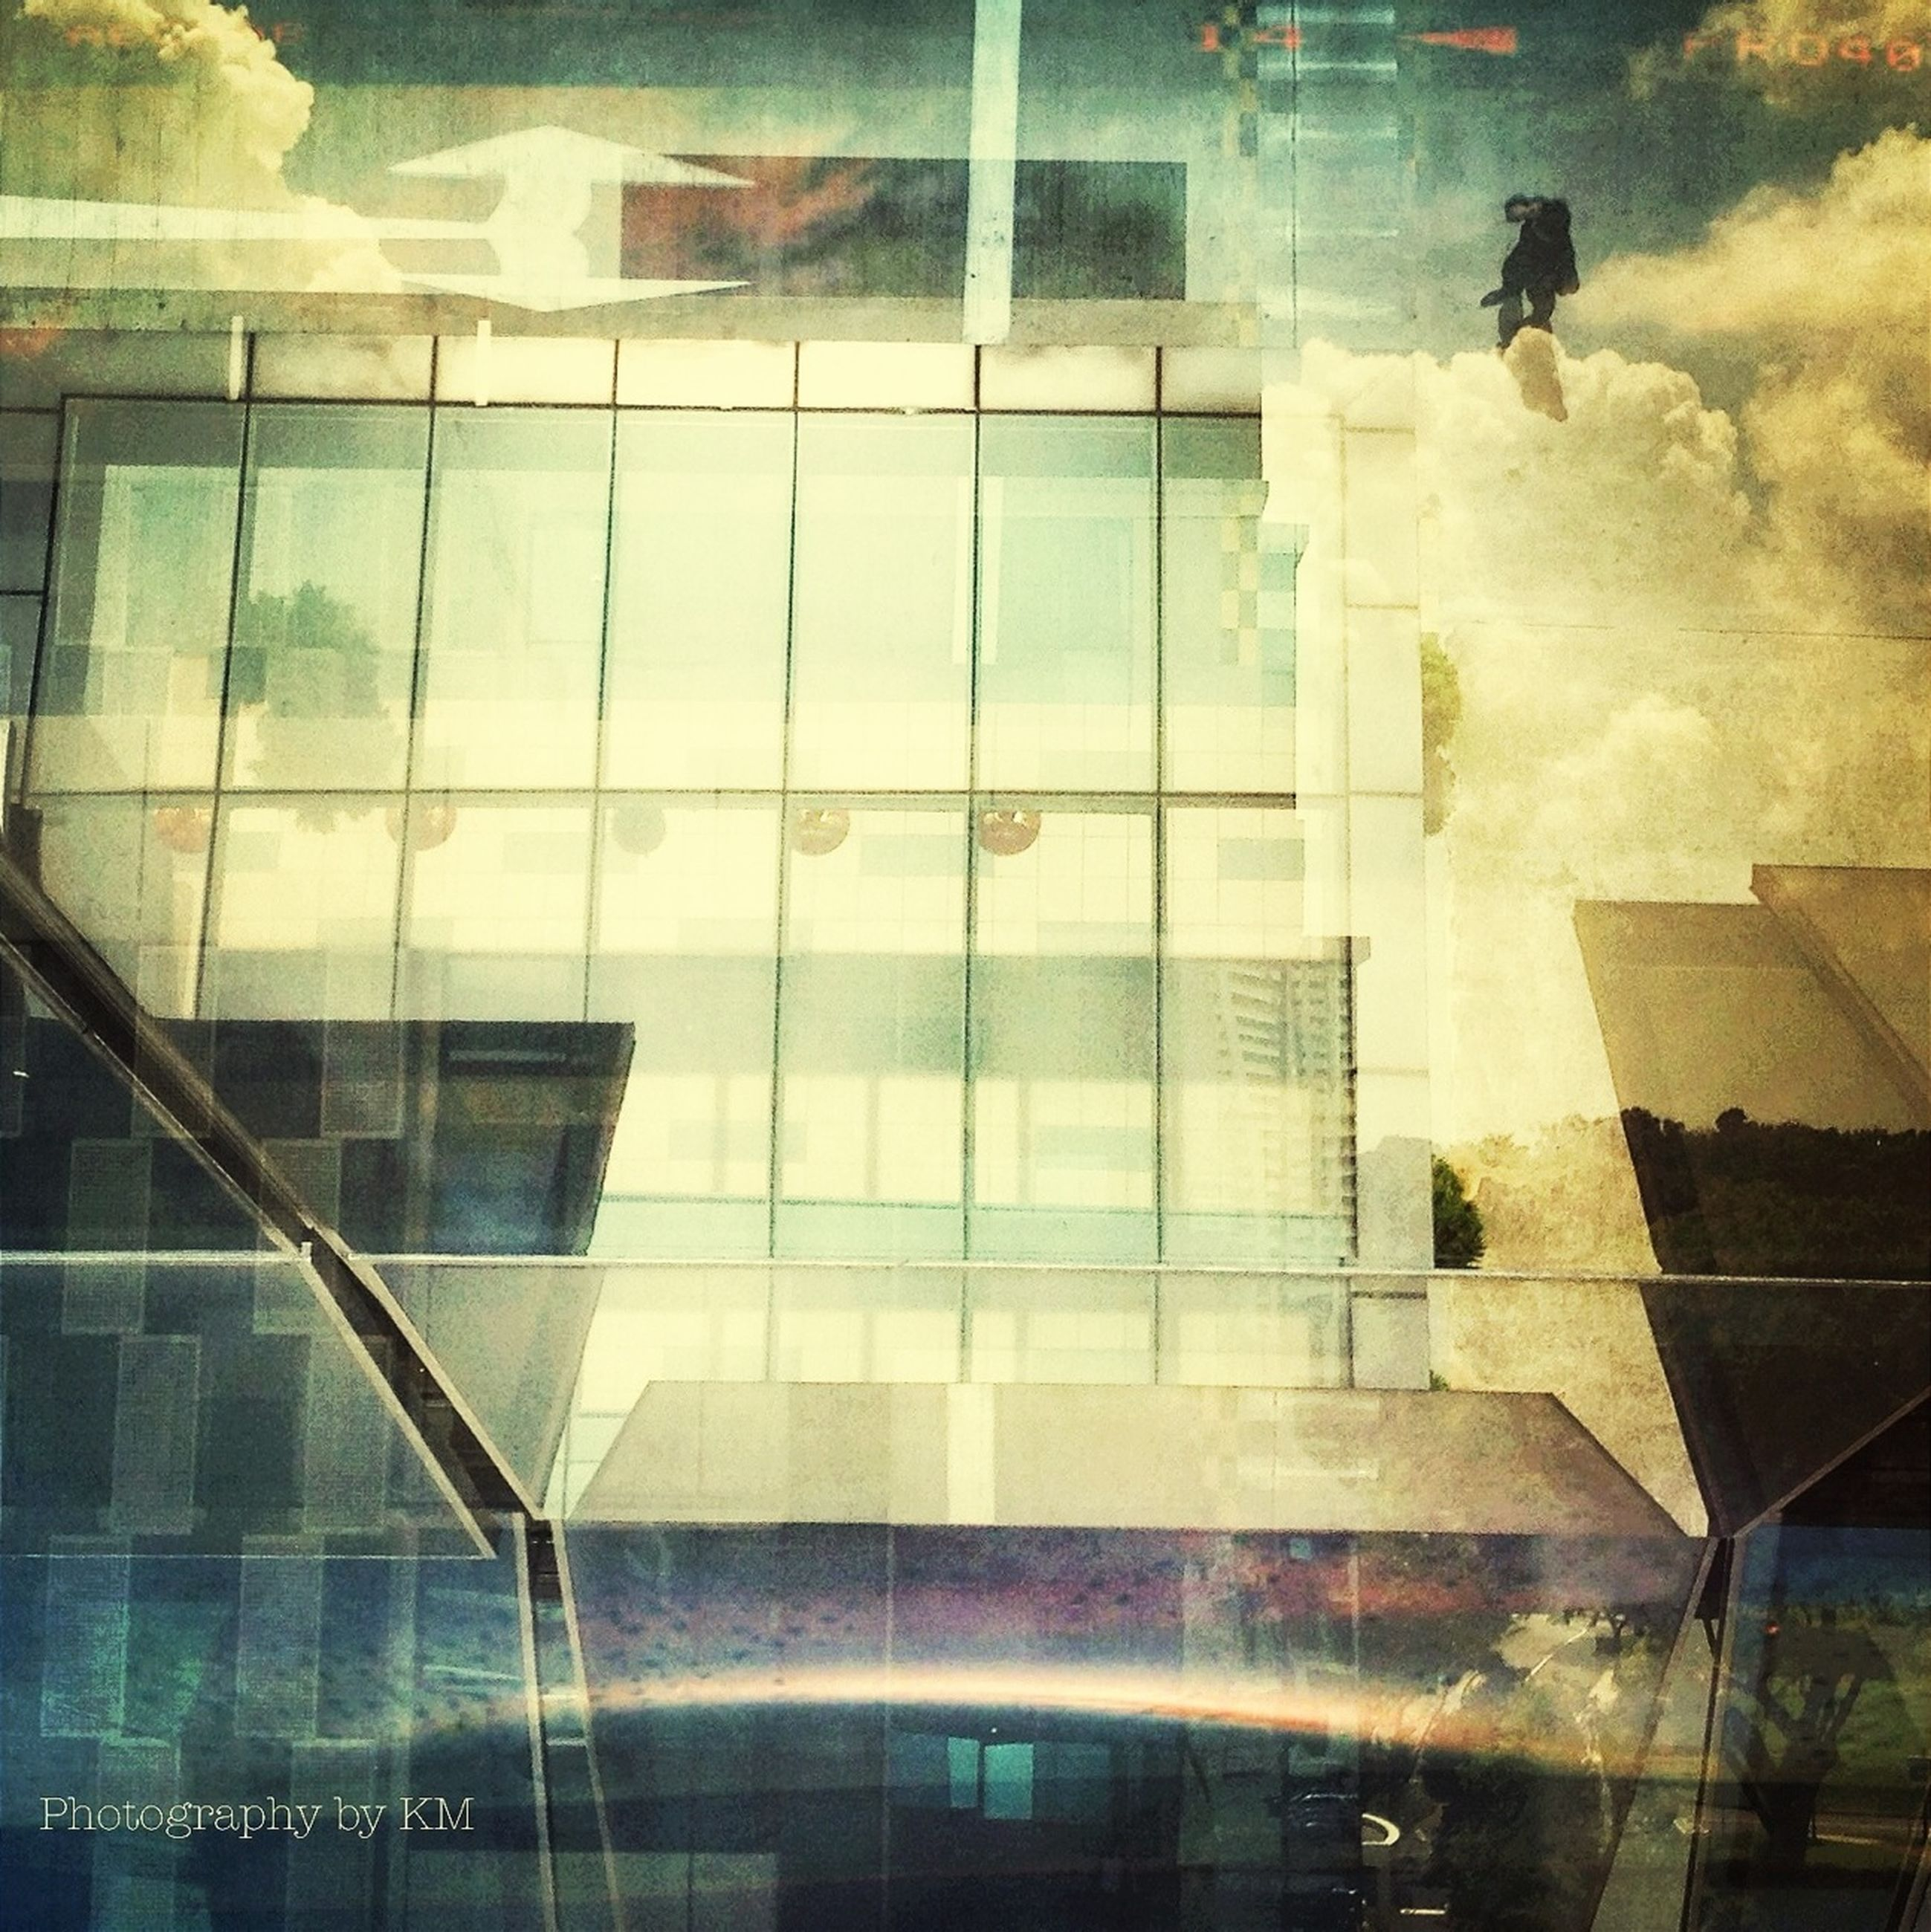 reflection, glass - material, indoors, transparent, window, architecture, built structure, water, modern, glass, building exterior, tiled floor, building, tile, pattern, day, high angle view, sunlight, wall - building feature, city